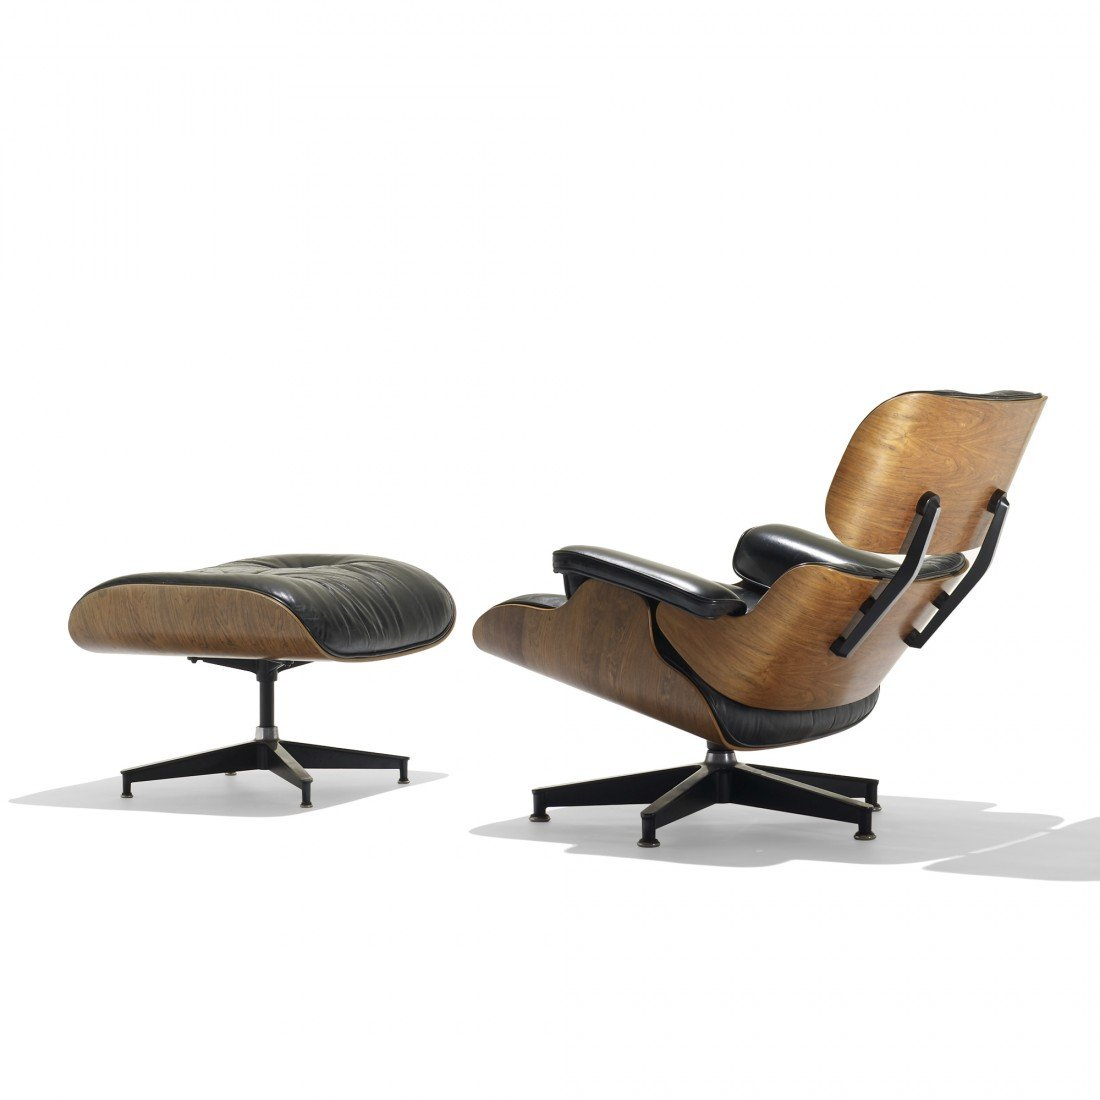 132: Eames 670 lounge chair and 671 ottoman